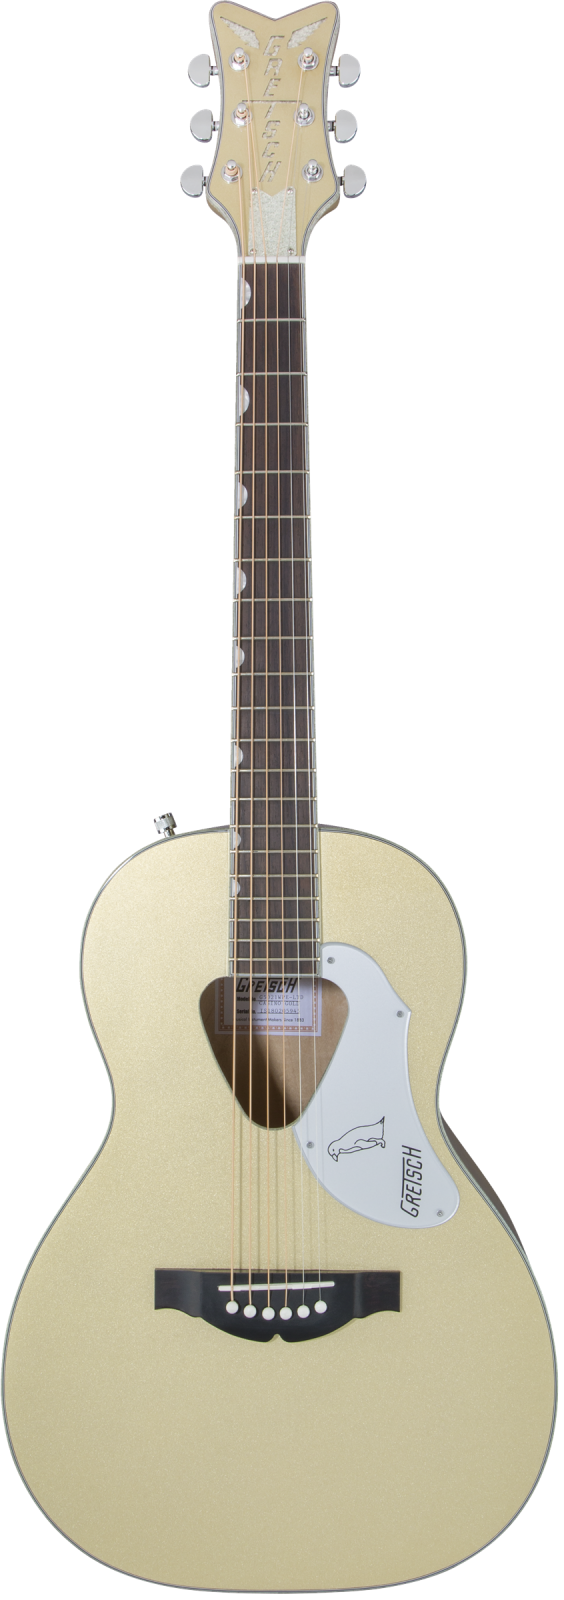 Gretsch G5021E Limited Edition Rancher Penguin Parlor